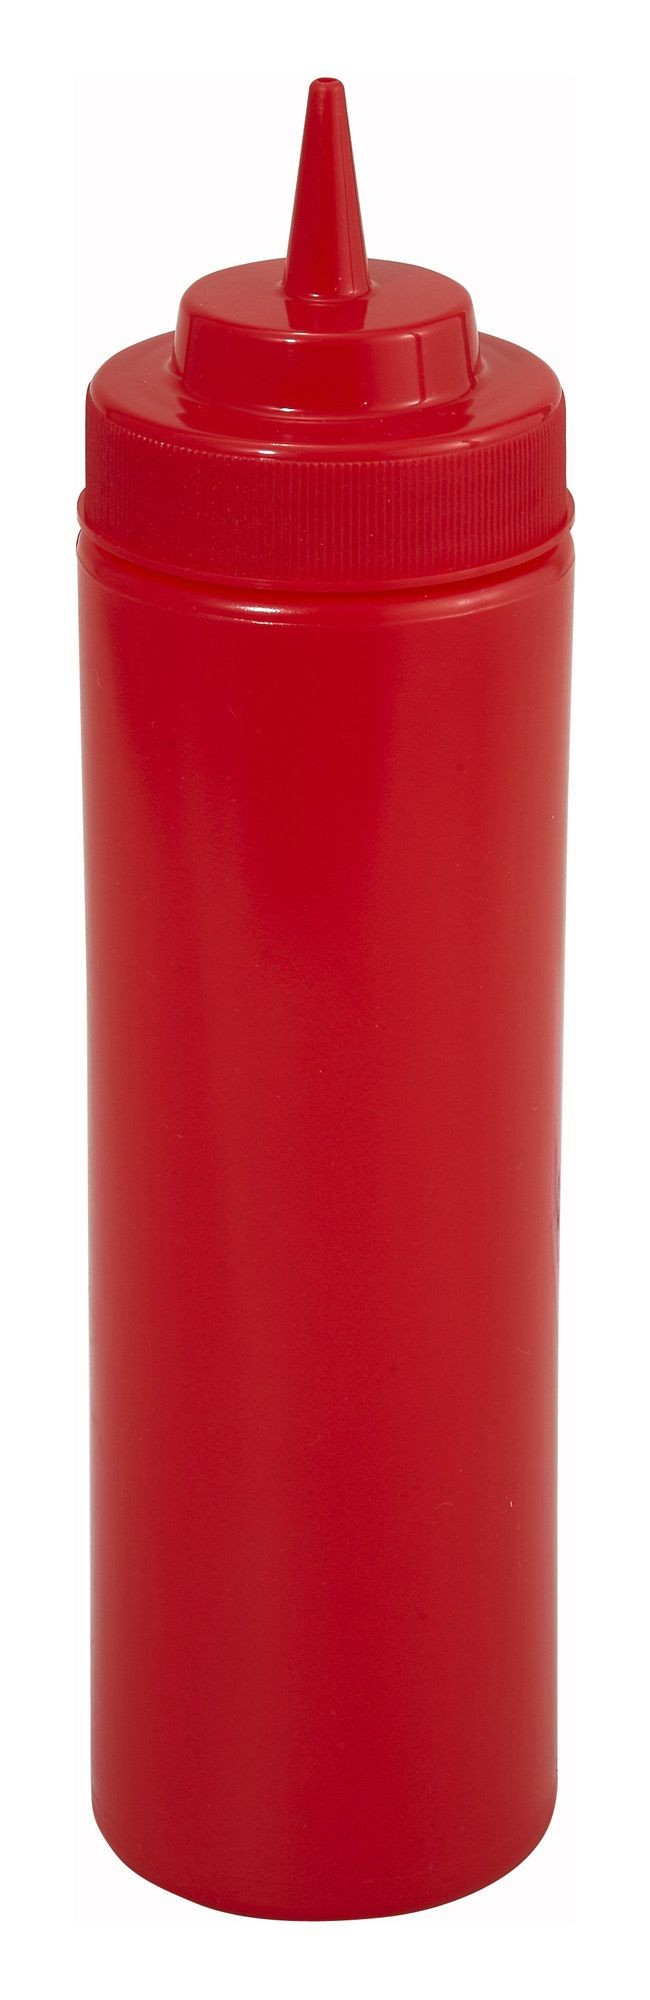 12 oz Wide Mouth Squeeze Bottle, Red, 6 pc/pack